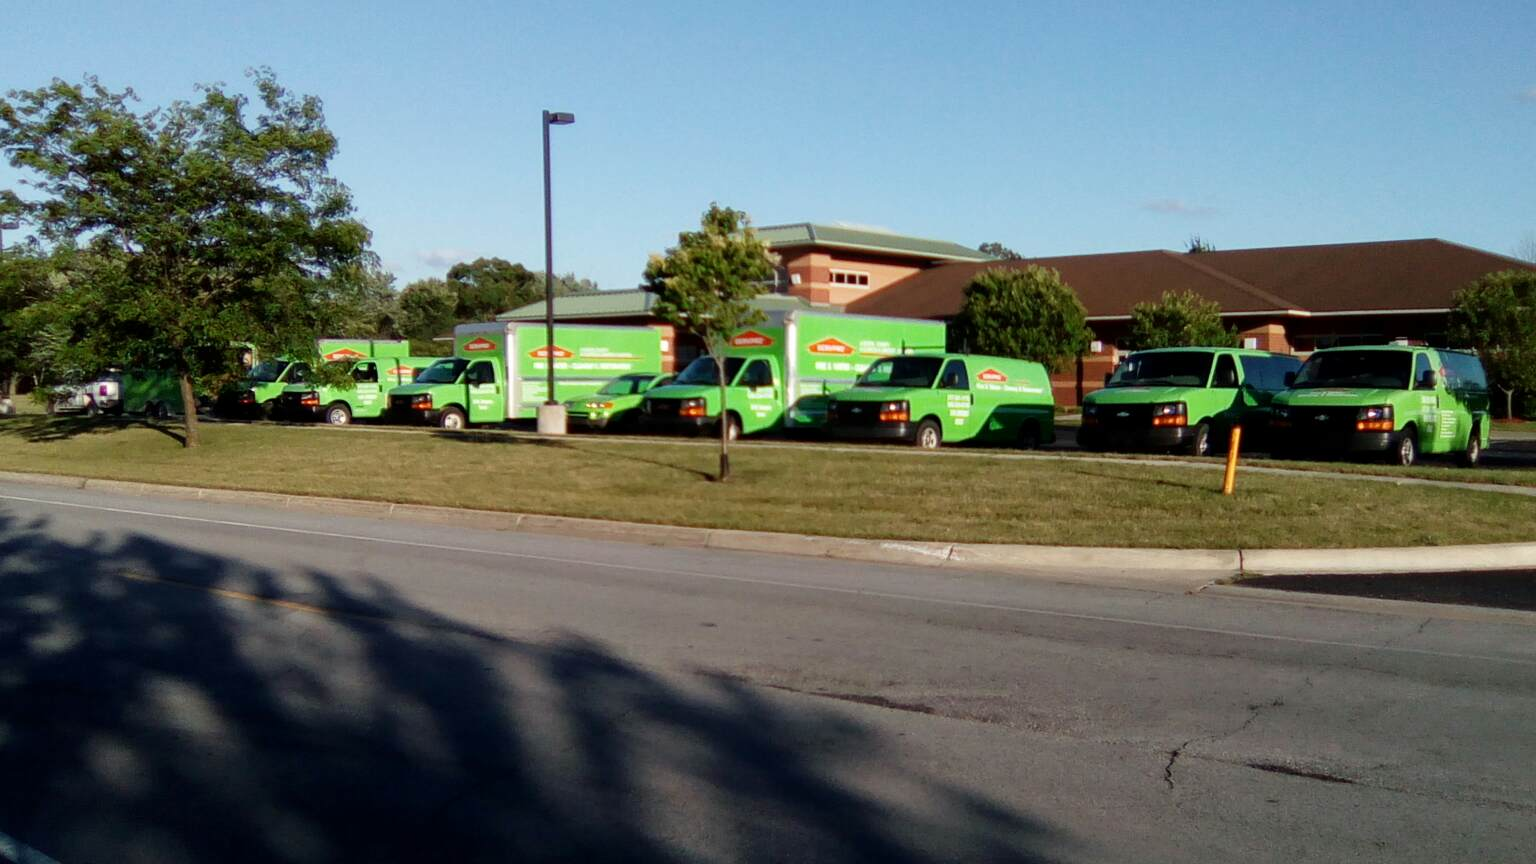 ServePro send 7 vans for the demolition work at the Bellows Home